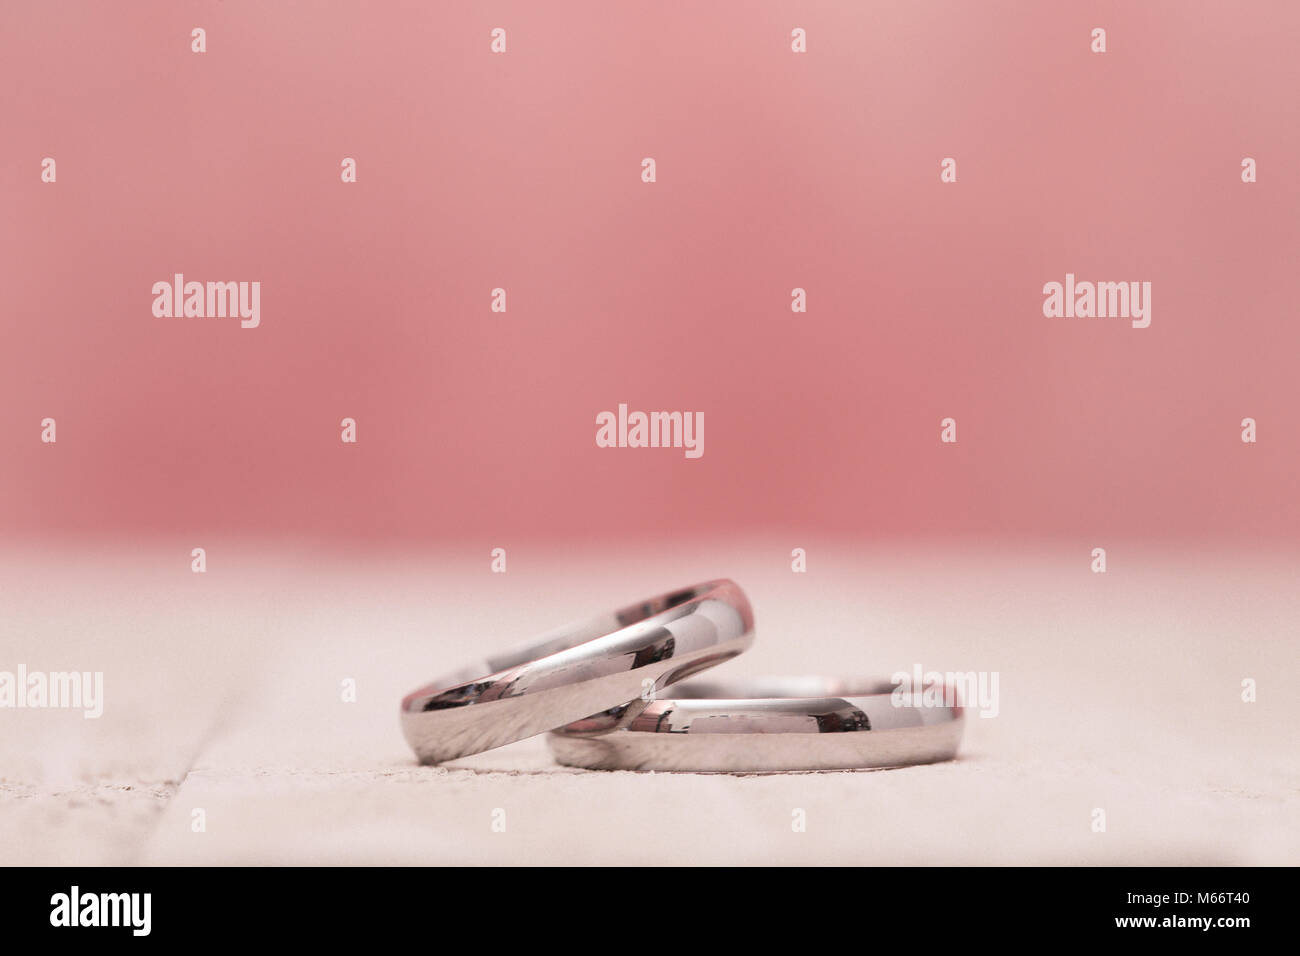 Ring Copy Stock Photos & Ring Copy Stock Images - Page 36 - Alamy